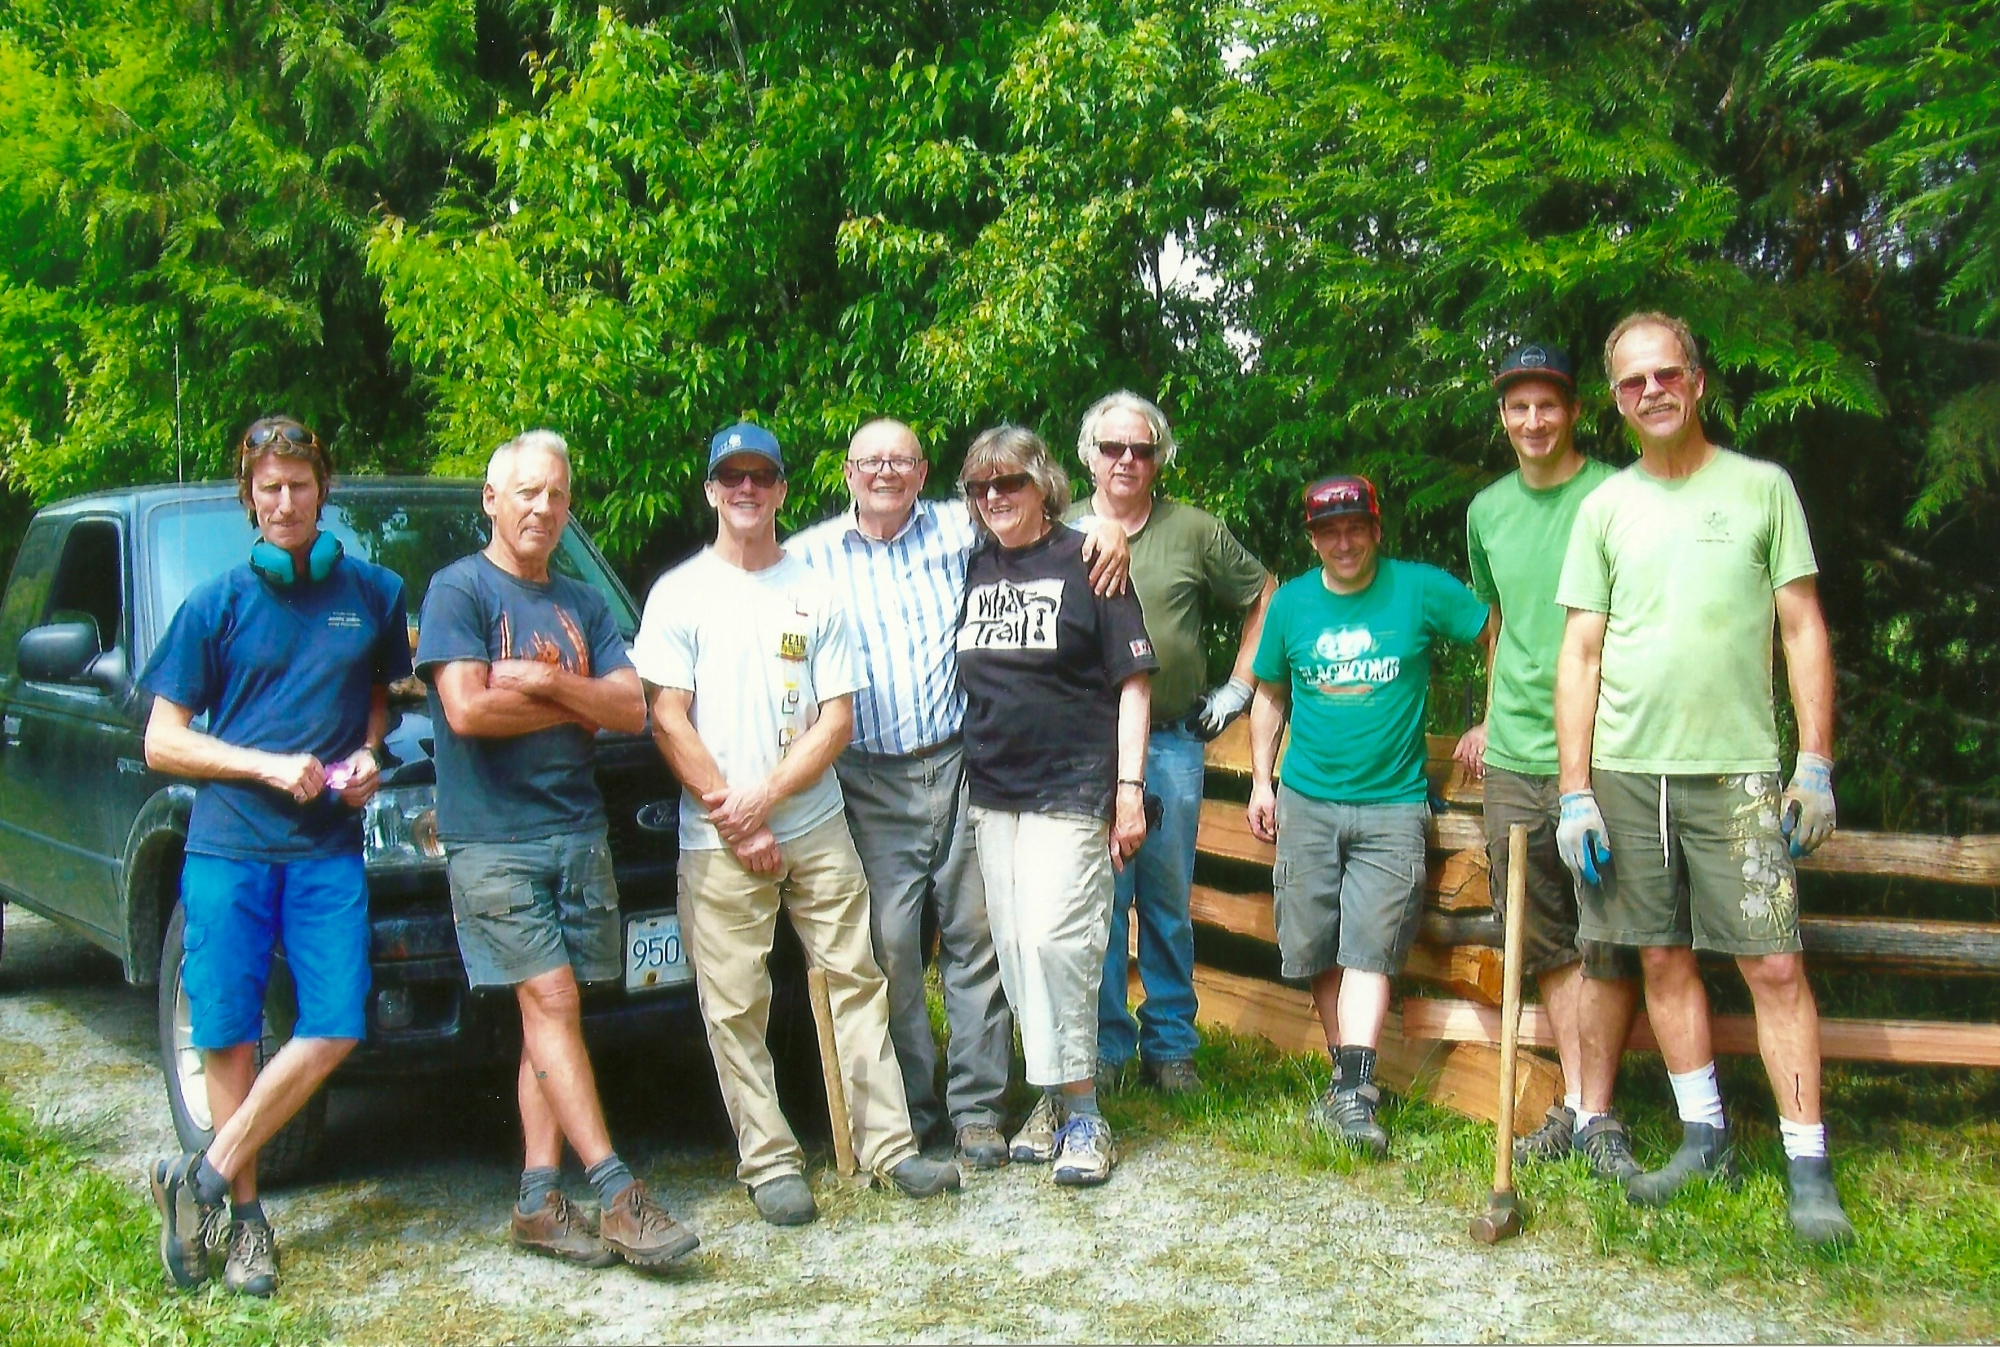 The volunteers who installed the split rail fence along Naylor Way Summer 2016